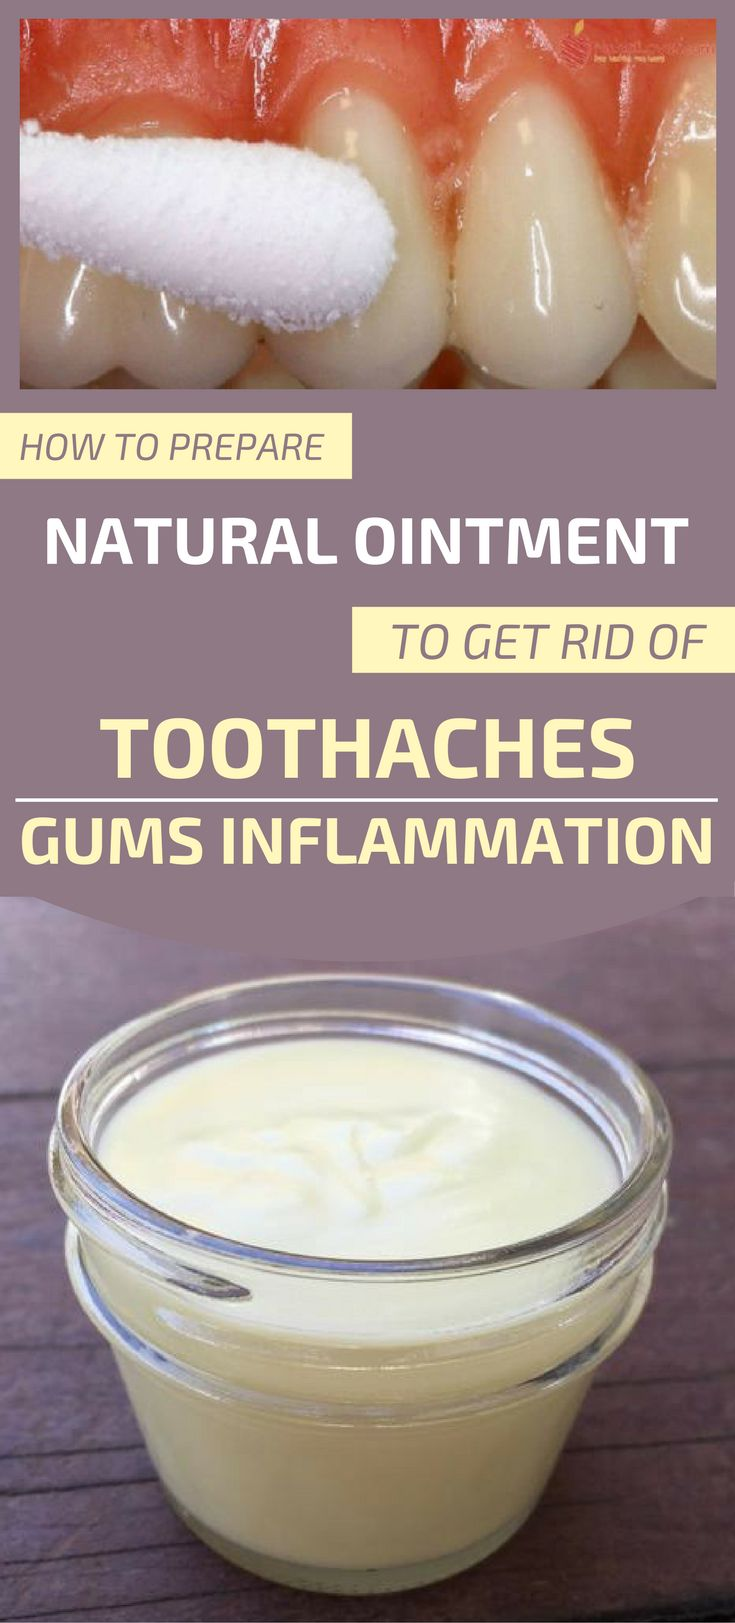 How To Prepare Natural Ointment To Get Rid Of Toothaches And Gums Inflammation